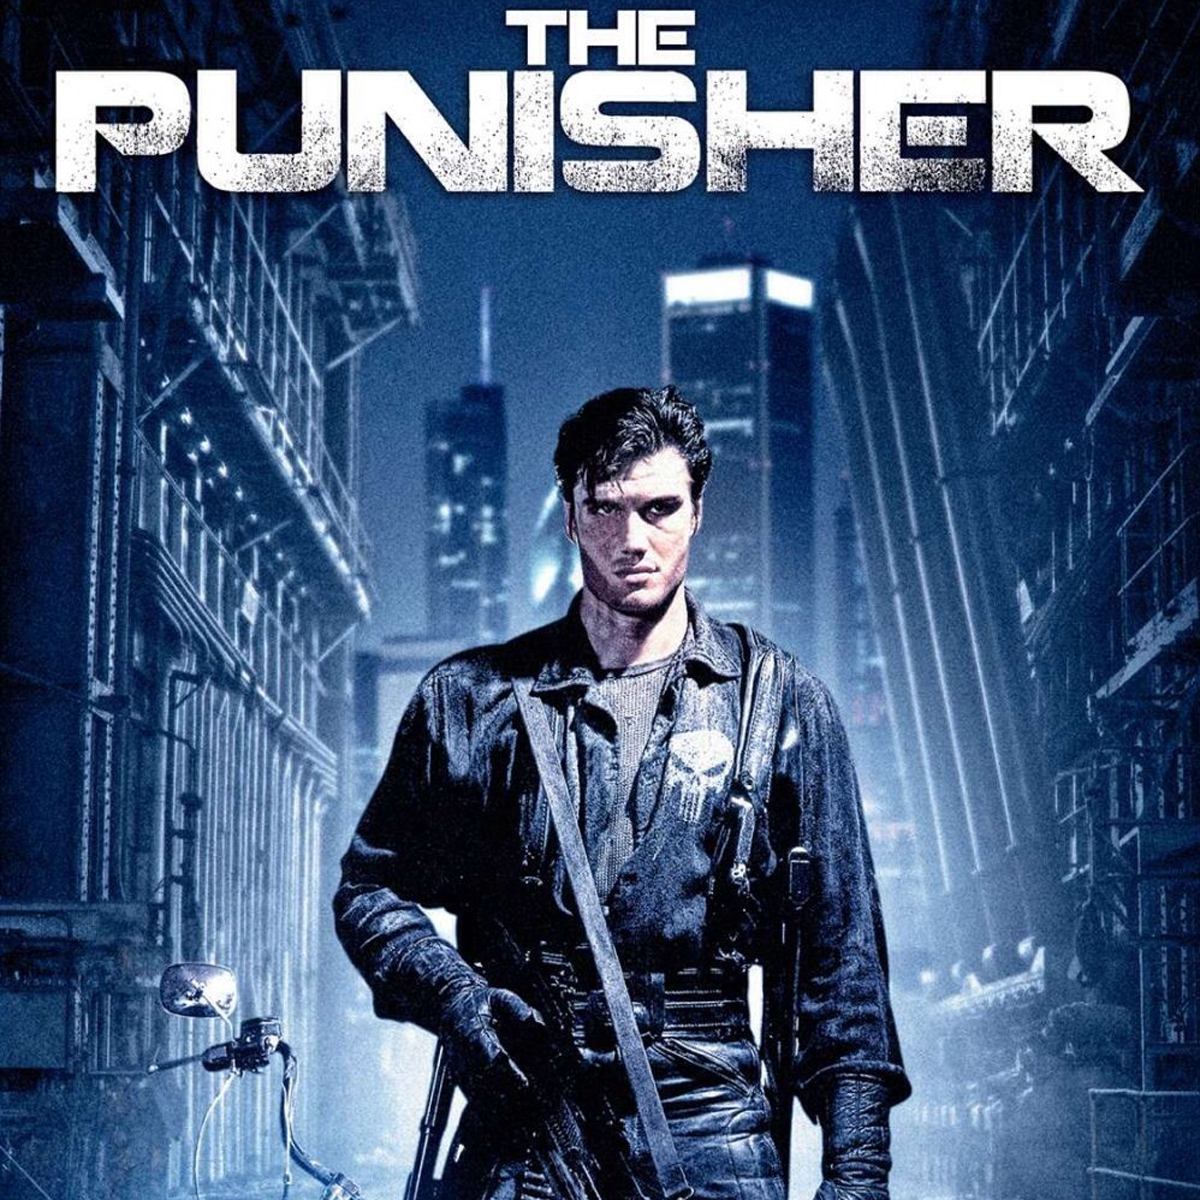 The Punisher 1989 movie review